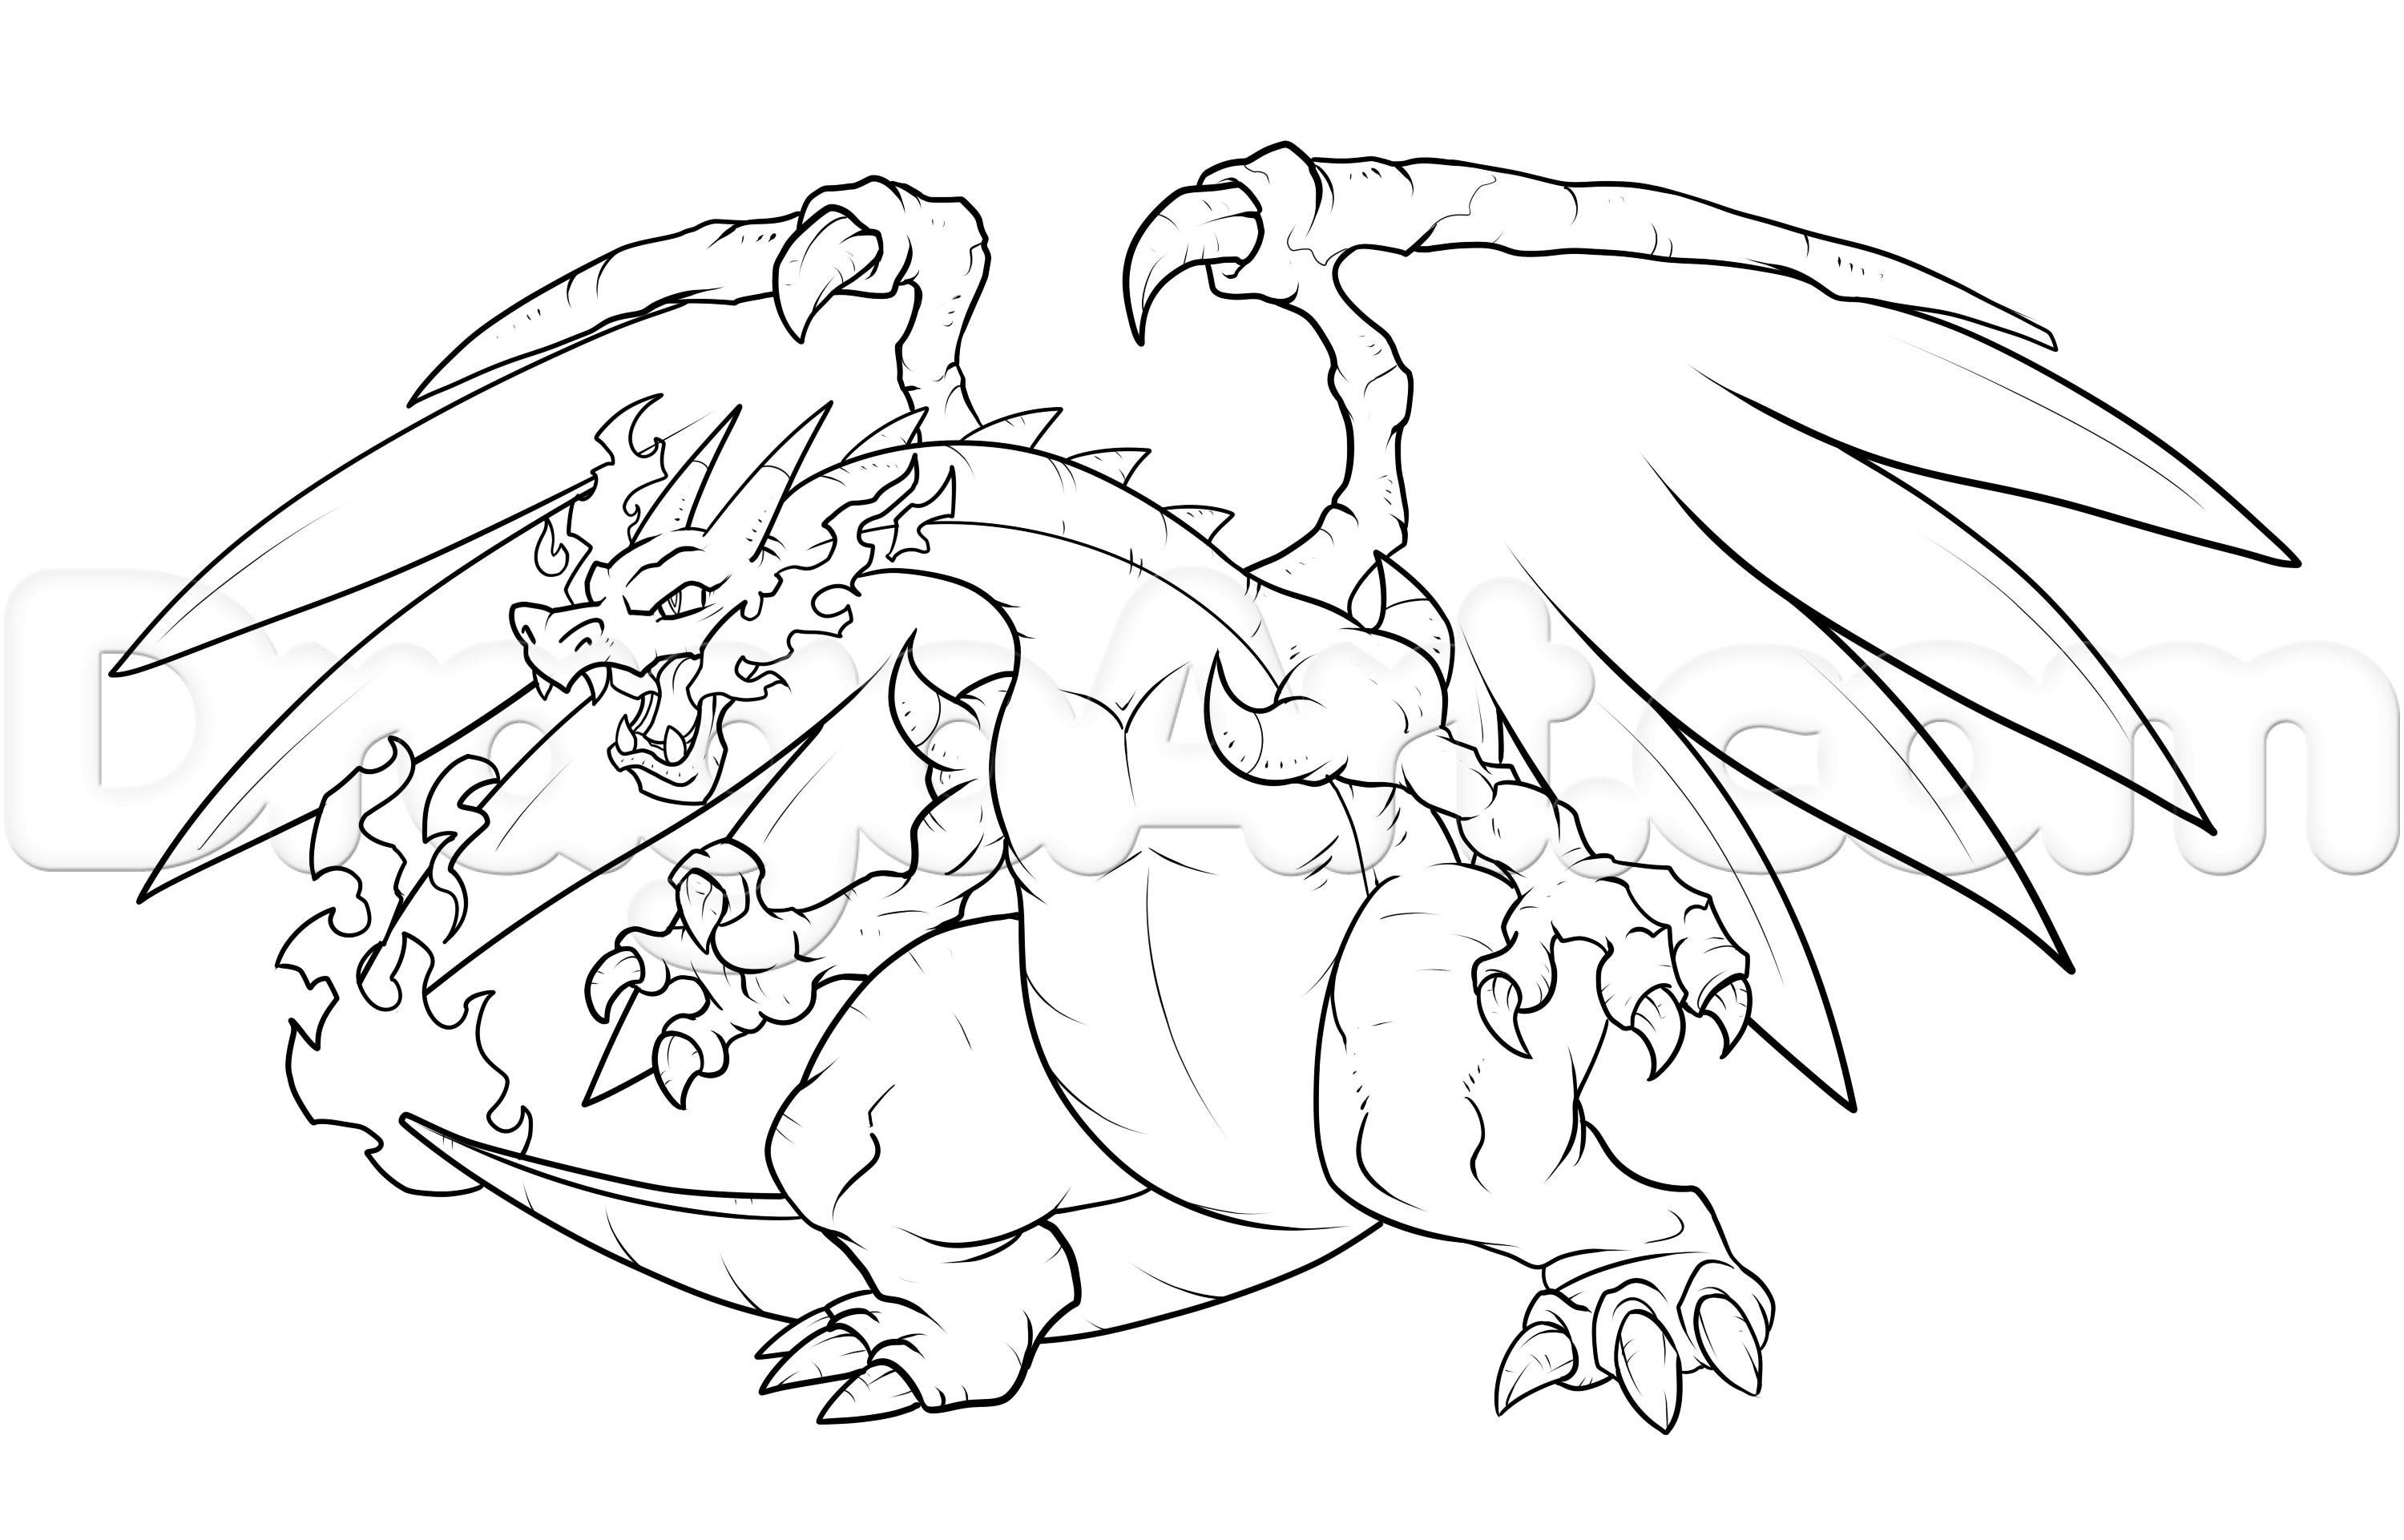 Pokemon Coloring Pages Mega Charizard X From The Thousand Photographs On The Net With Regards To Pokemon Coloring Page Gratis Kleurplaten Kleurplaten Pokemon